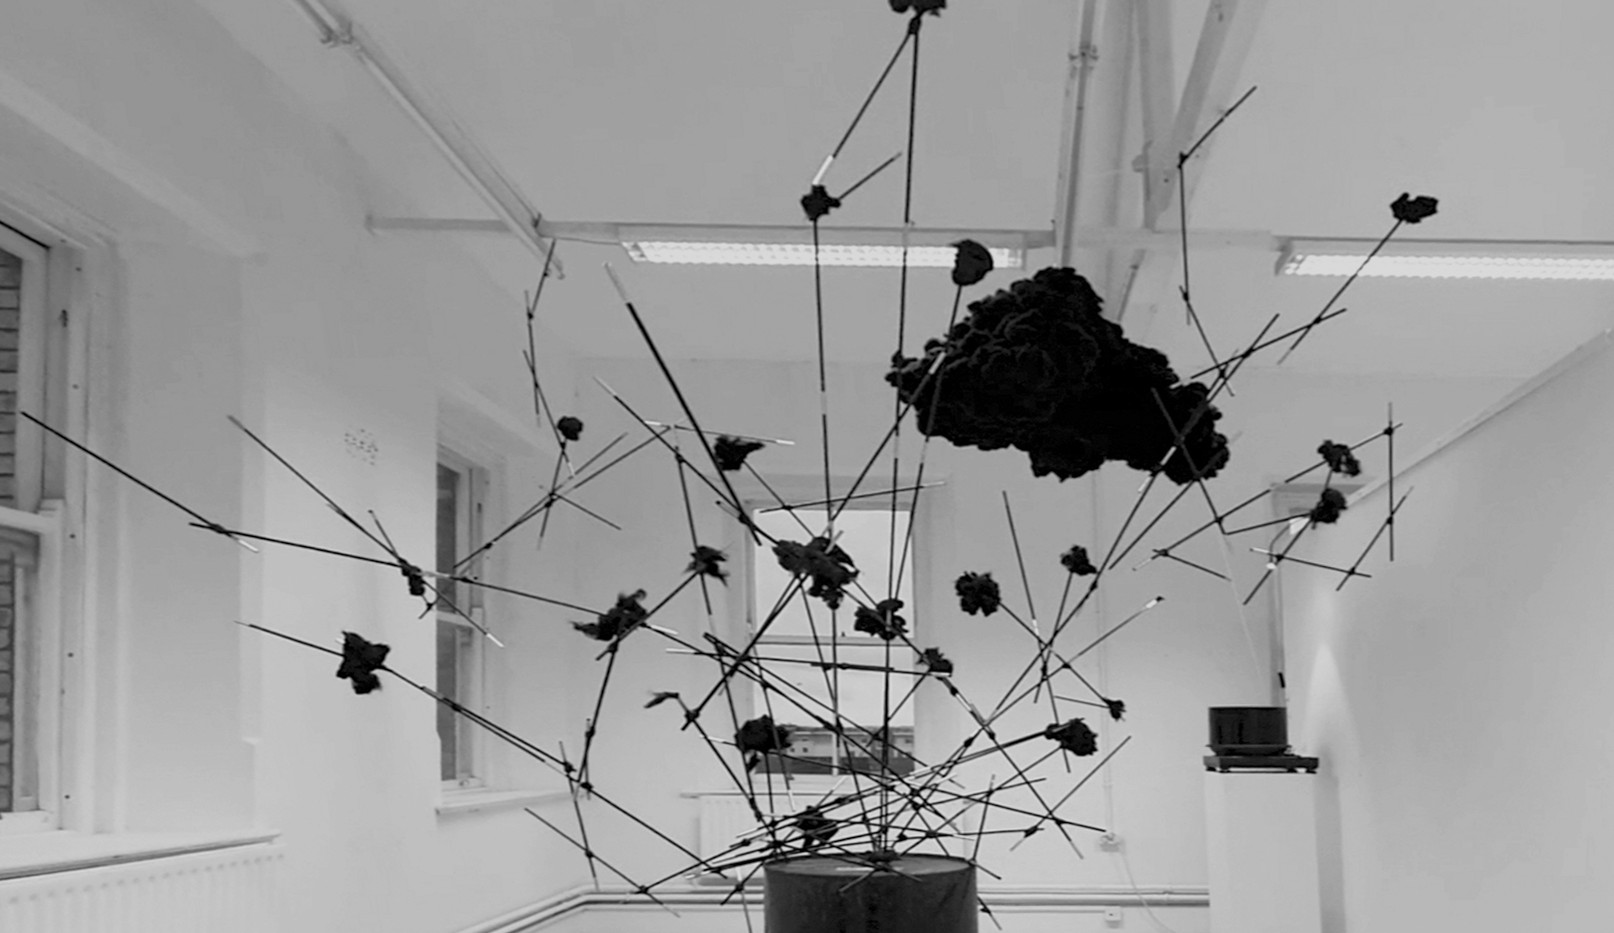 pre-miasma, installation made for First View